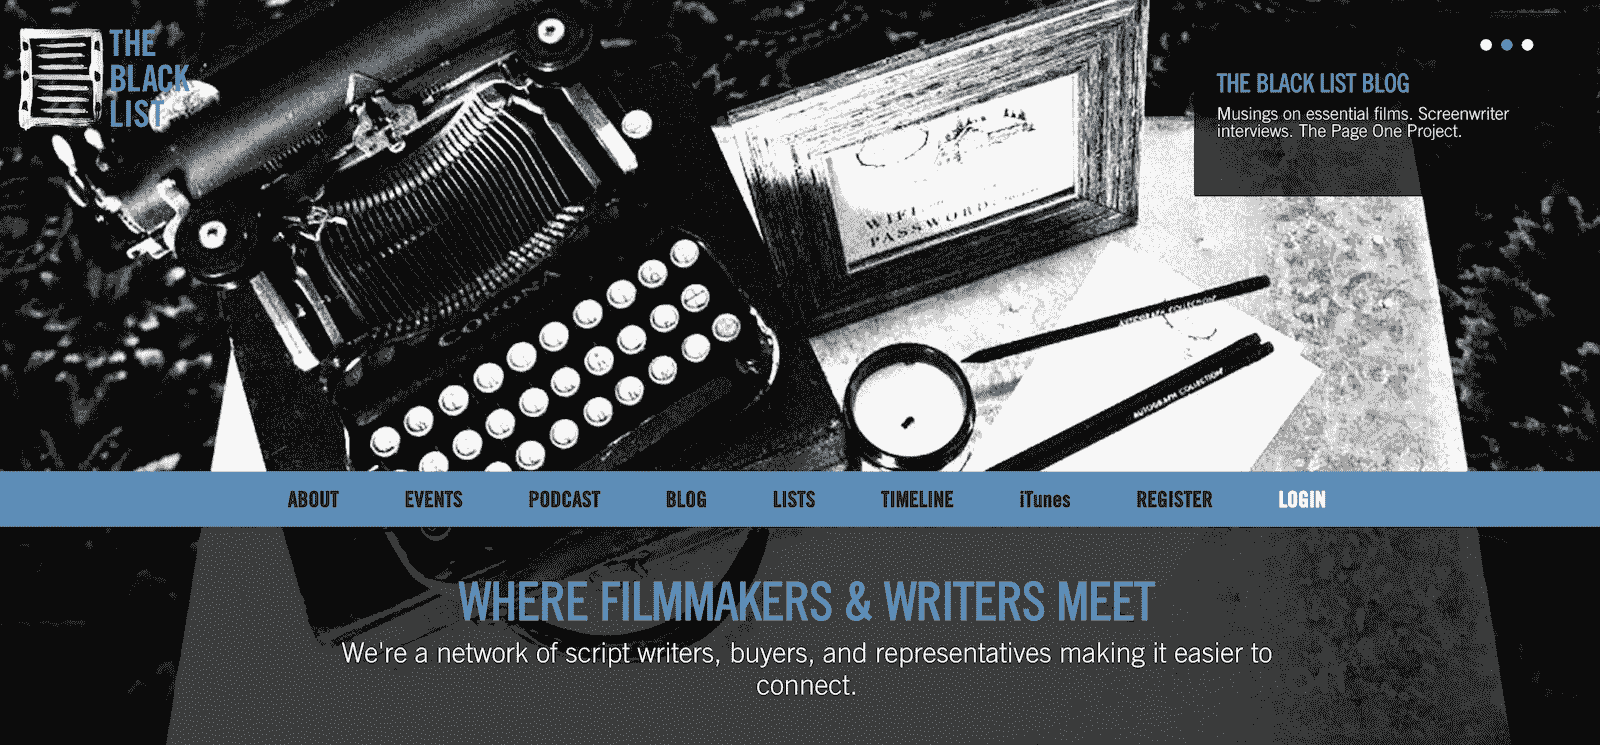 Best Screenwriting Websites - Script Writers - The Black List